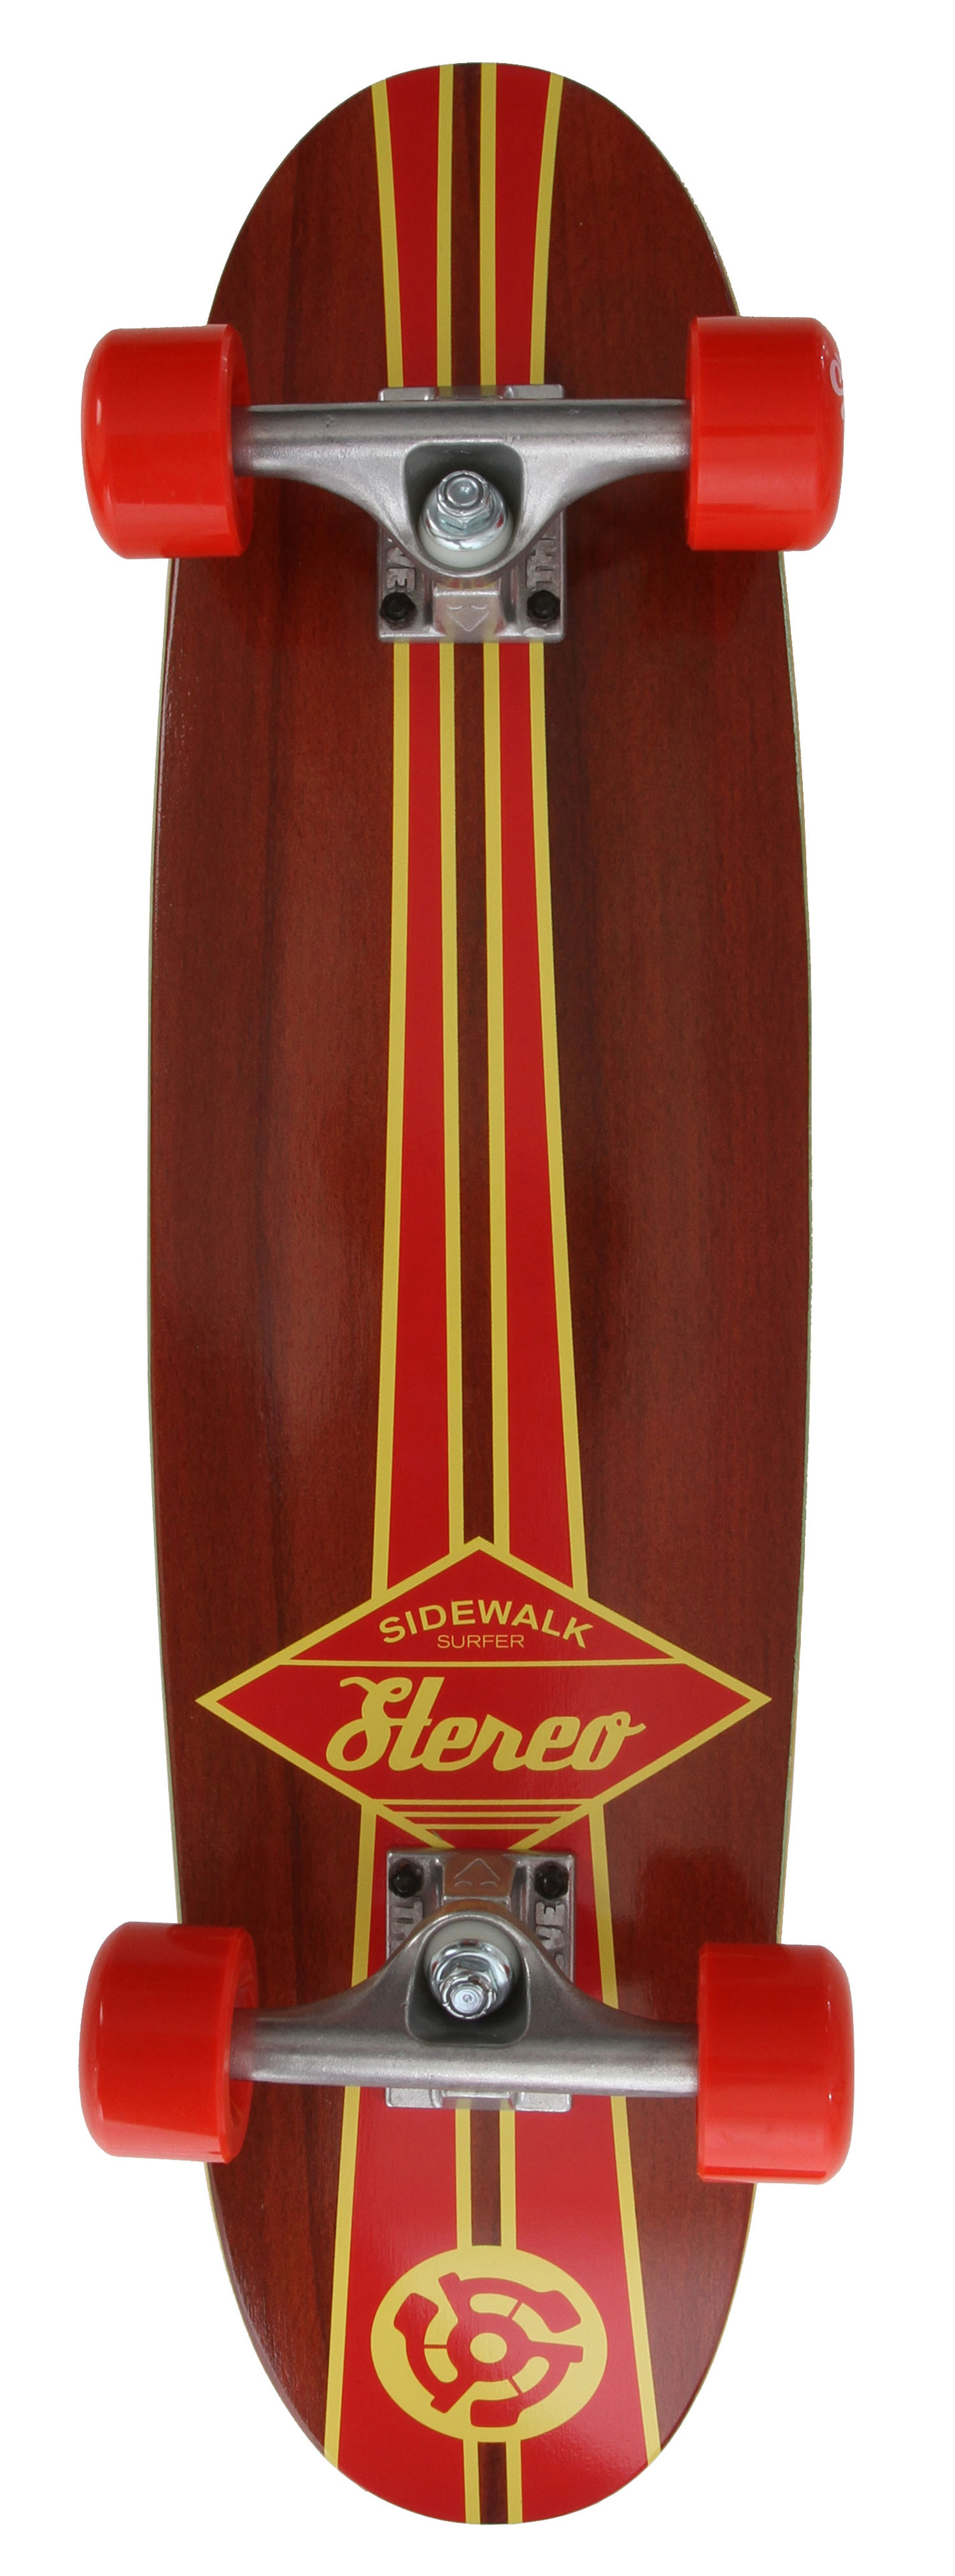 "Skateboard Key Features of the Stereo Sidewalk Surfer Longboard Skateboard Complete: 7.25"" Sidewalk Surfer Cruiser Complete Theeve Trucks Stereo Wheels Grip Tape 7-ply Maple - $96.95"